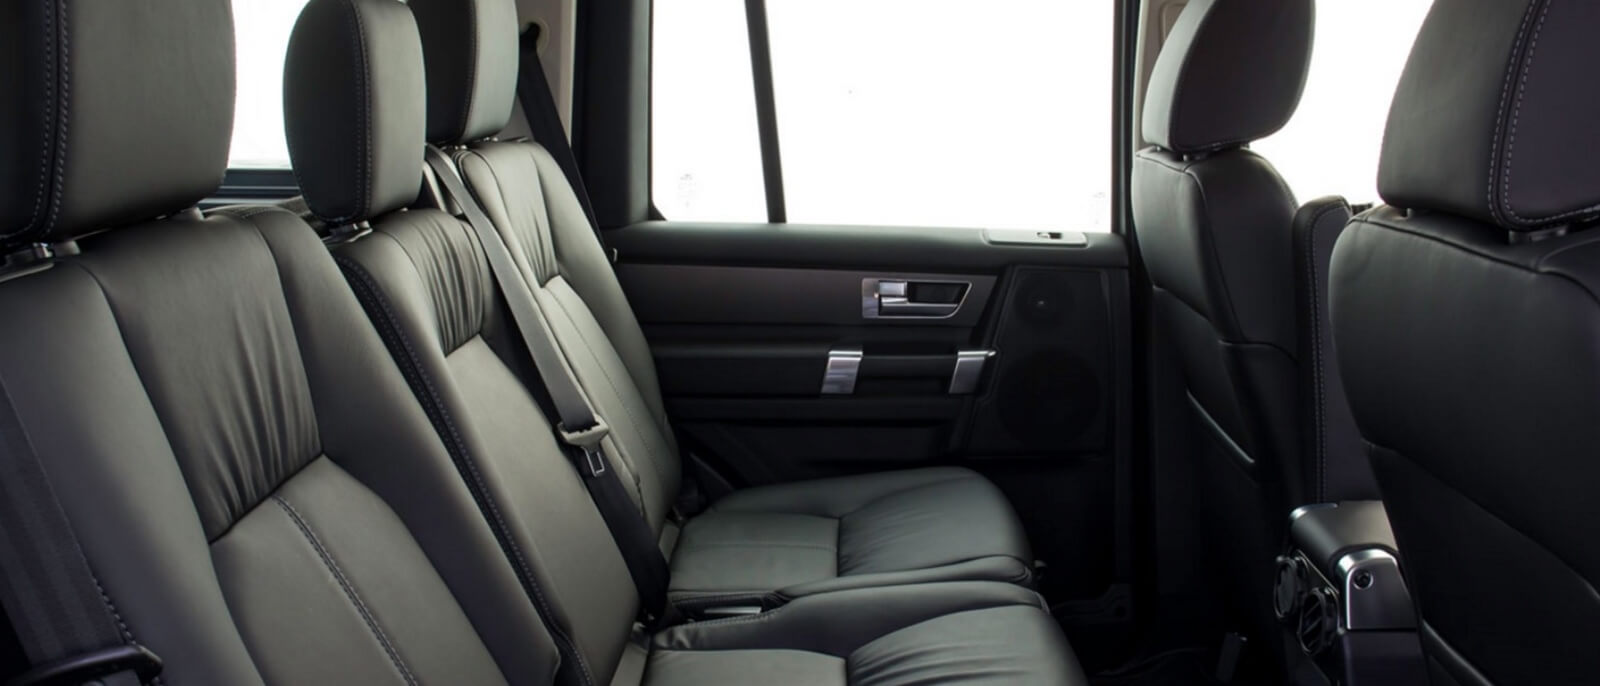 2016 Land Rover LR4 interior seating